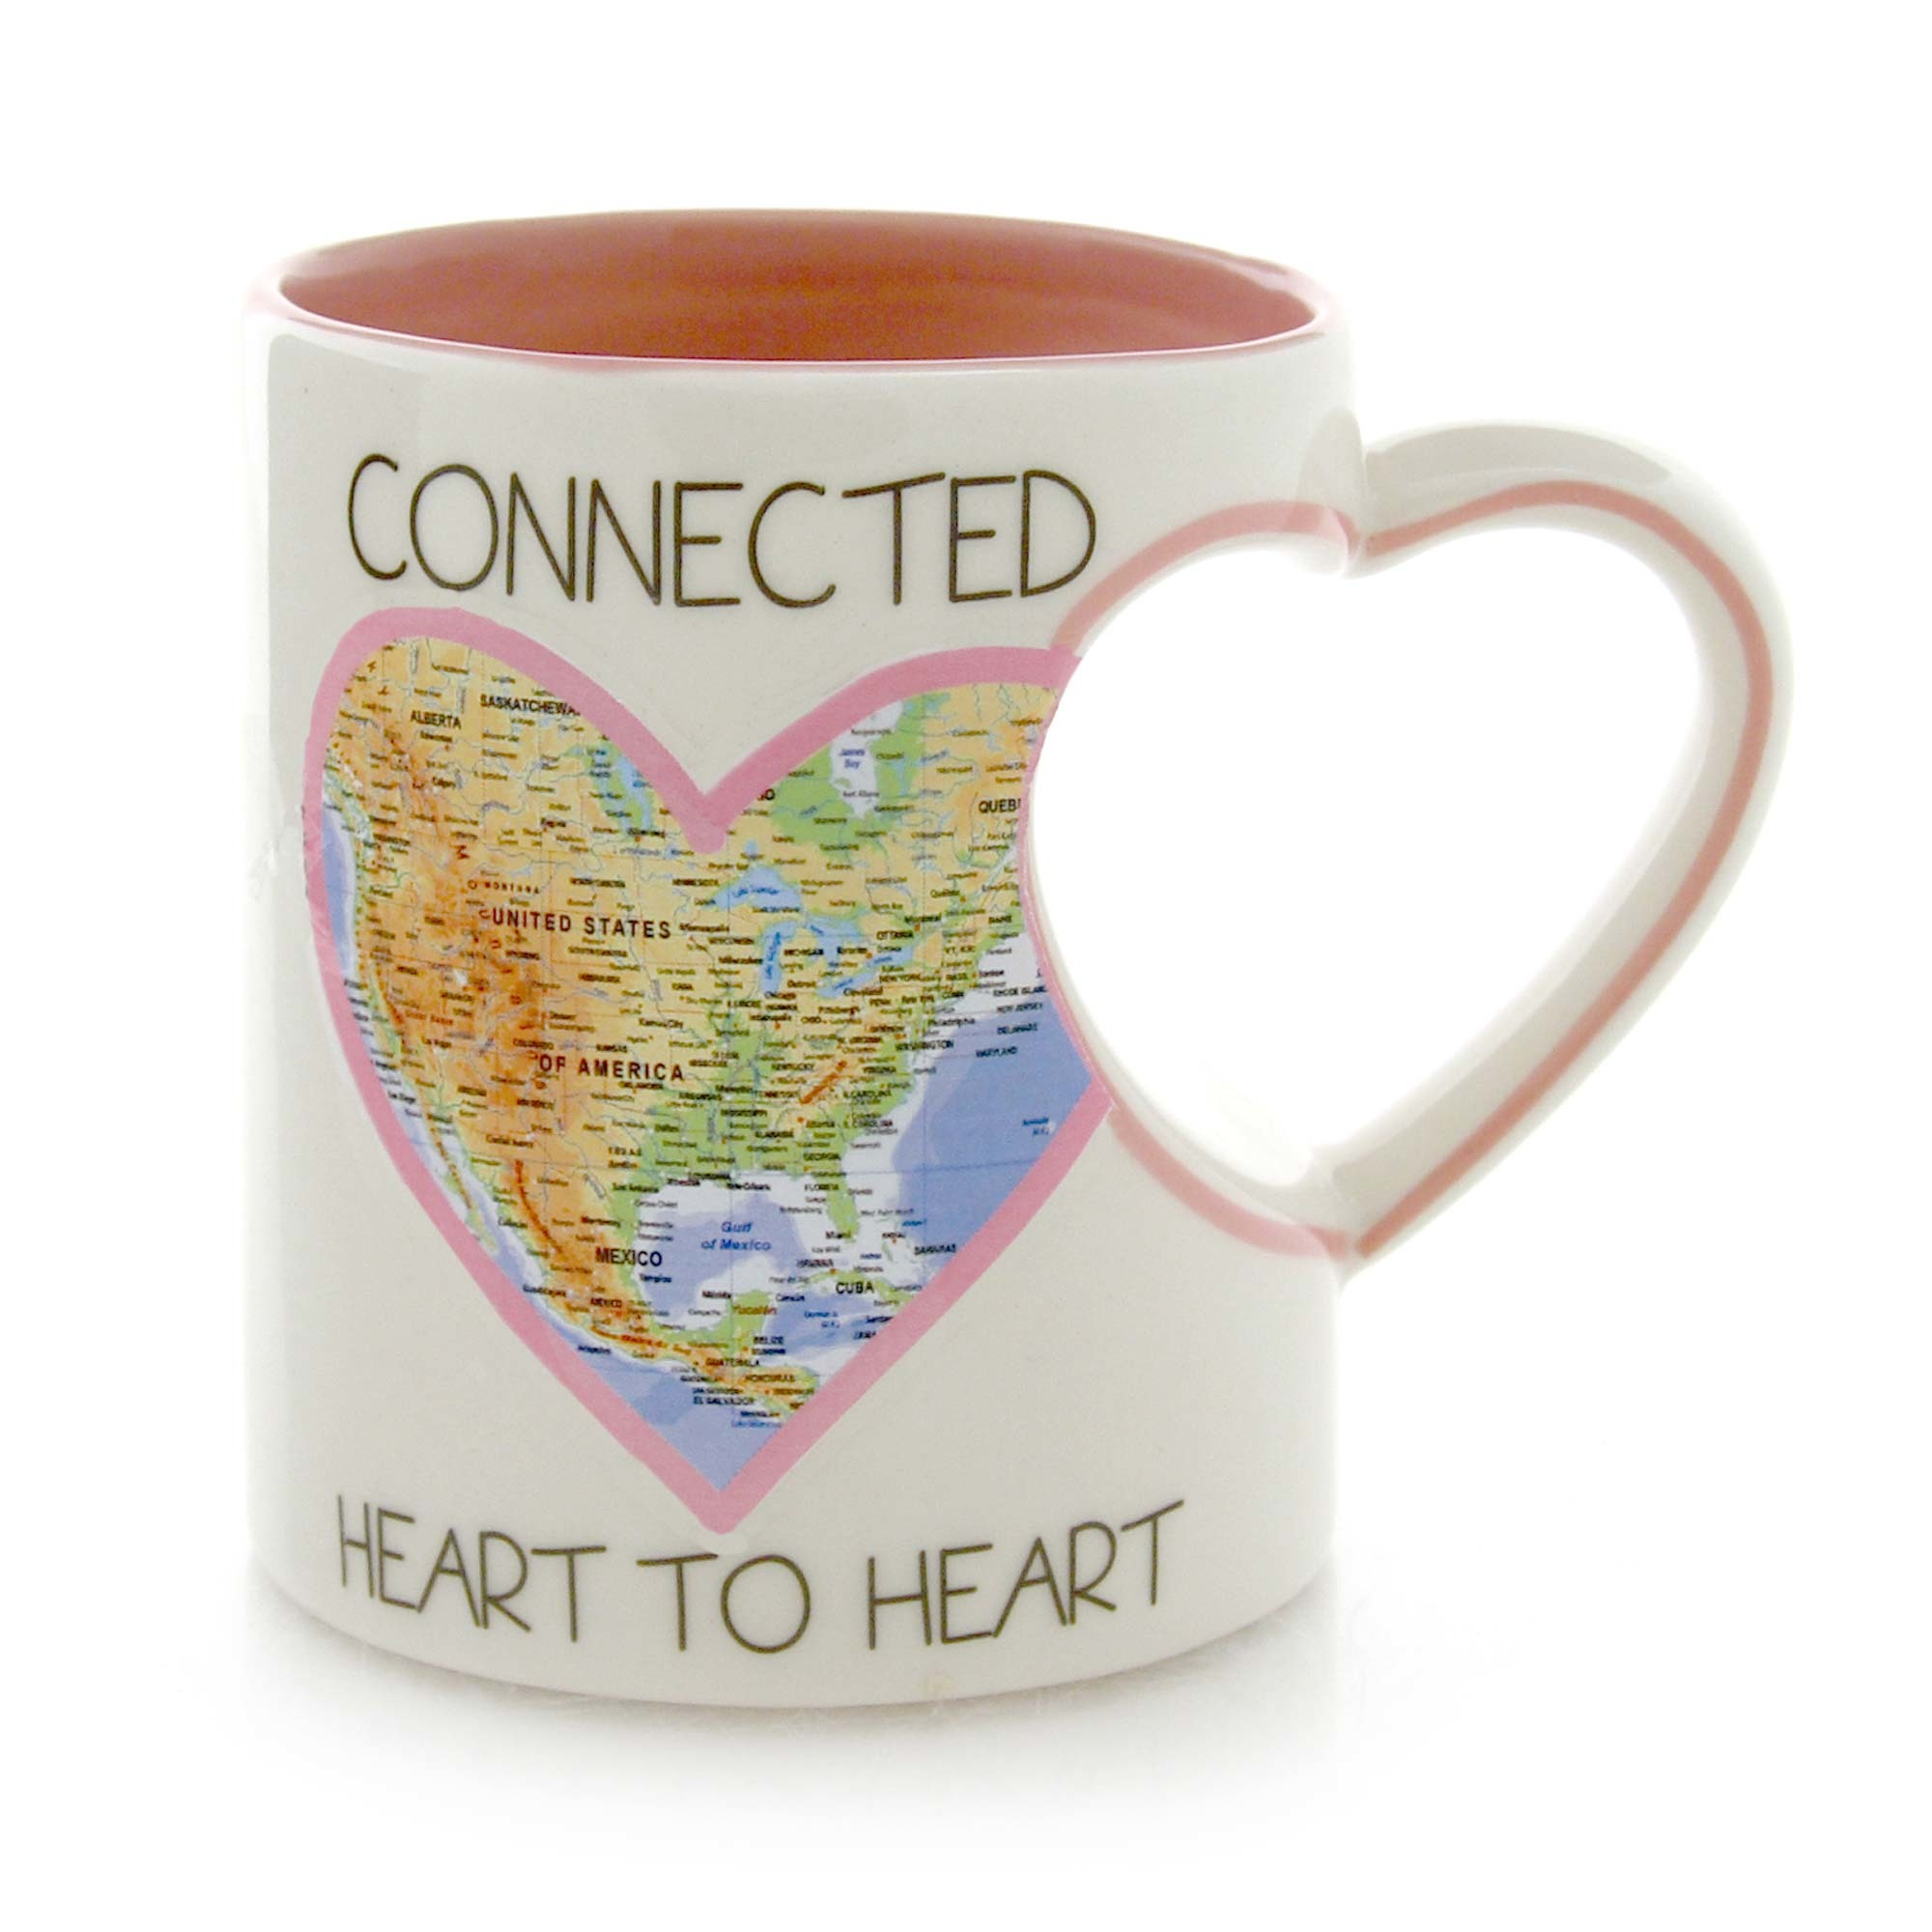 Connected Heart To Heart Mug